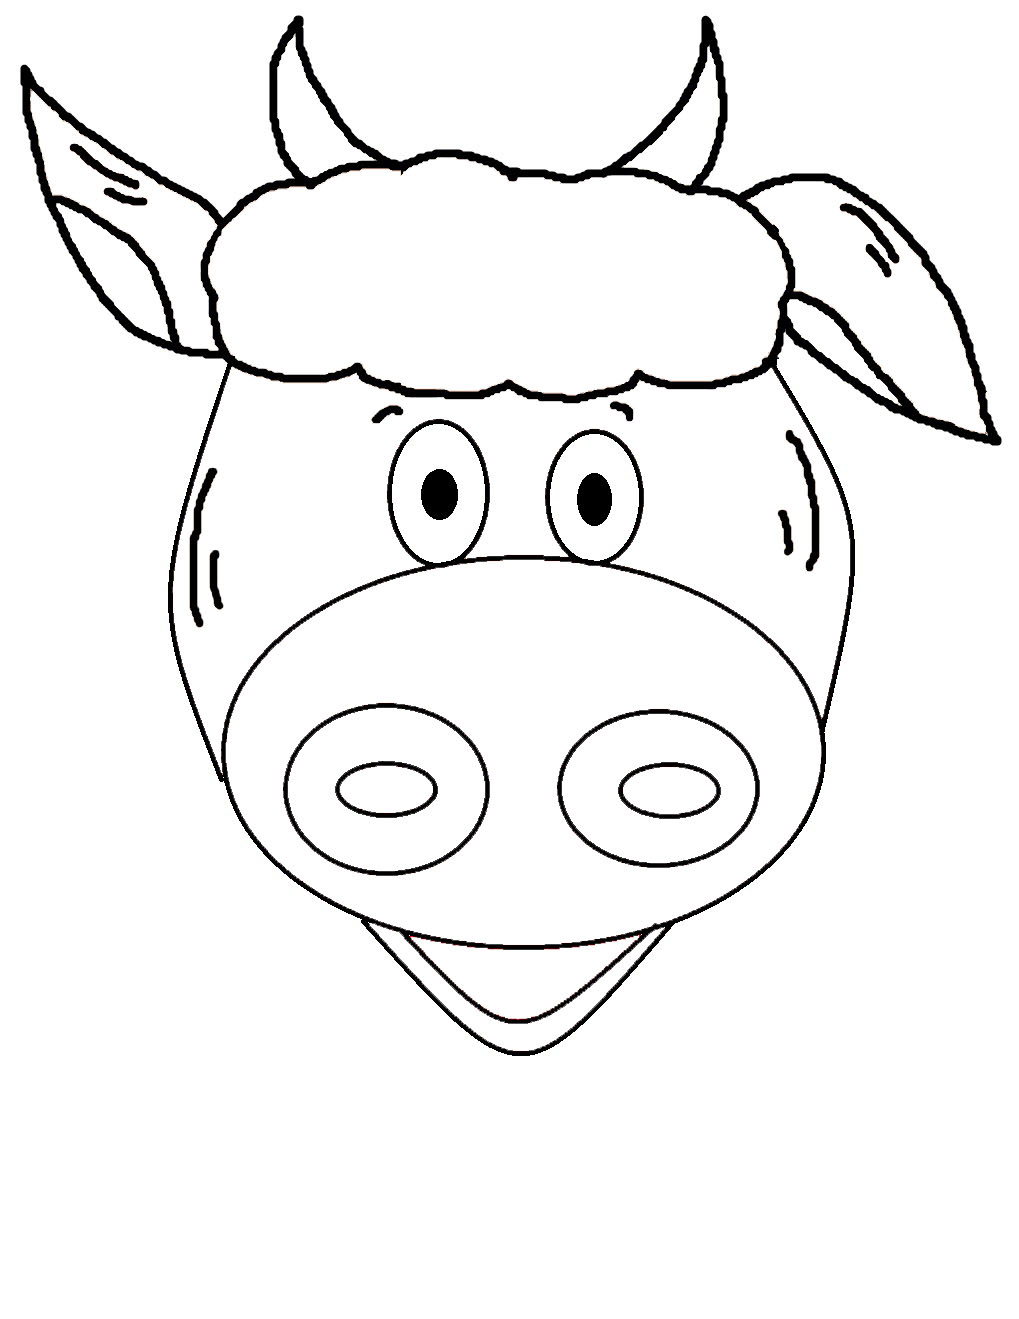 Cartoon Cow Face Outline 15 Cow Template Printable